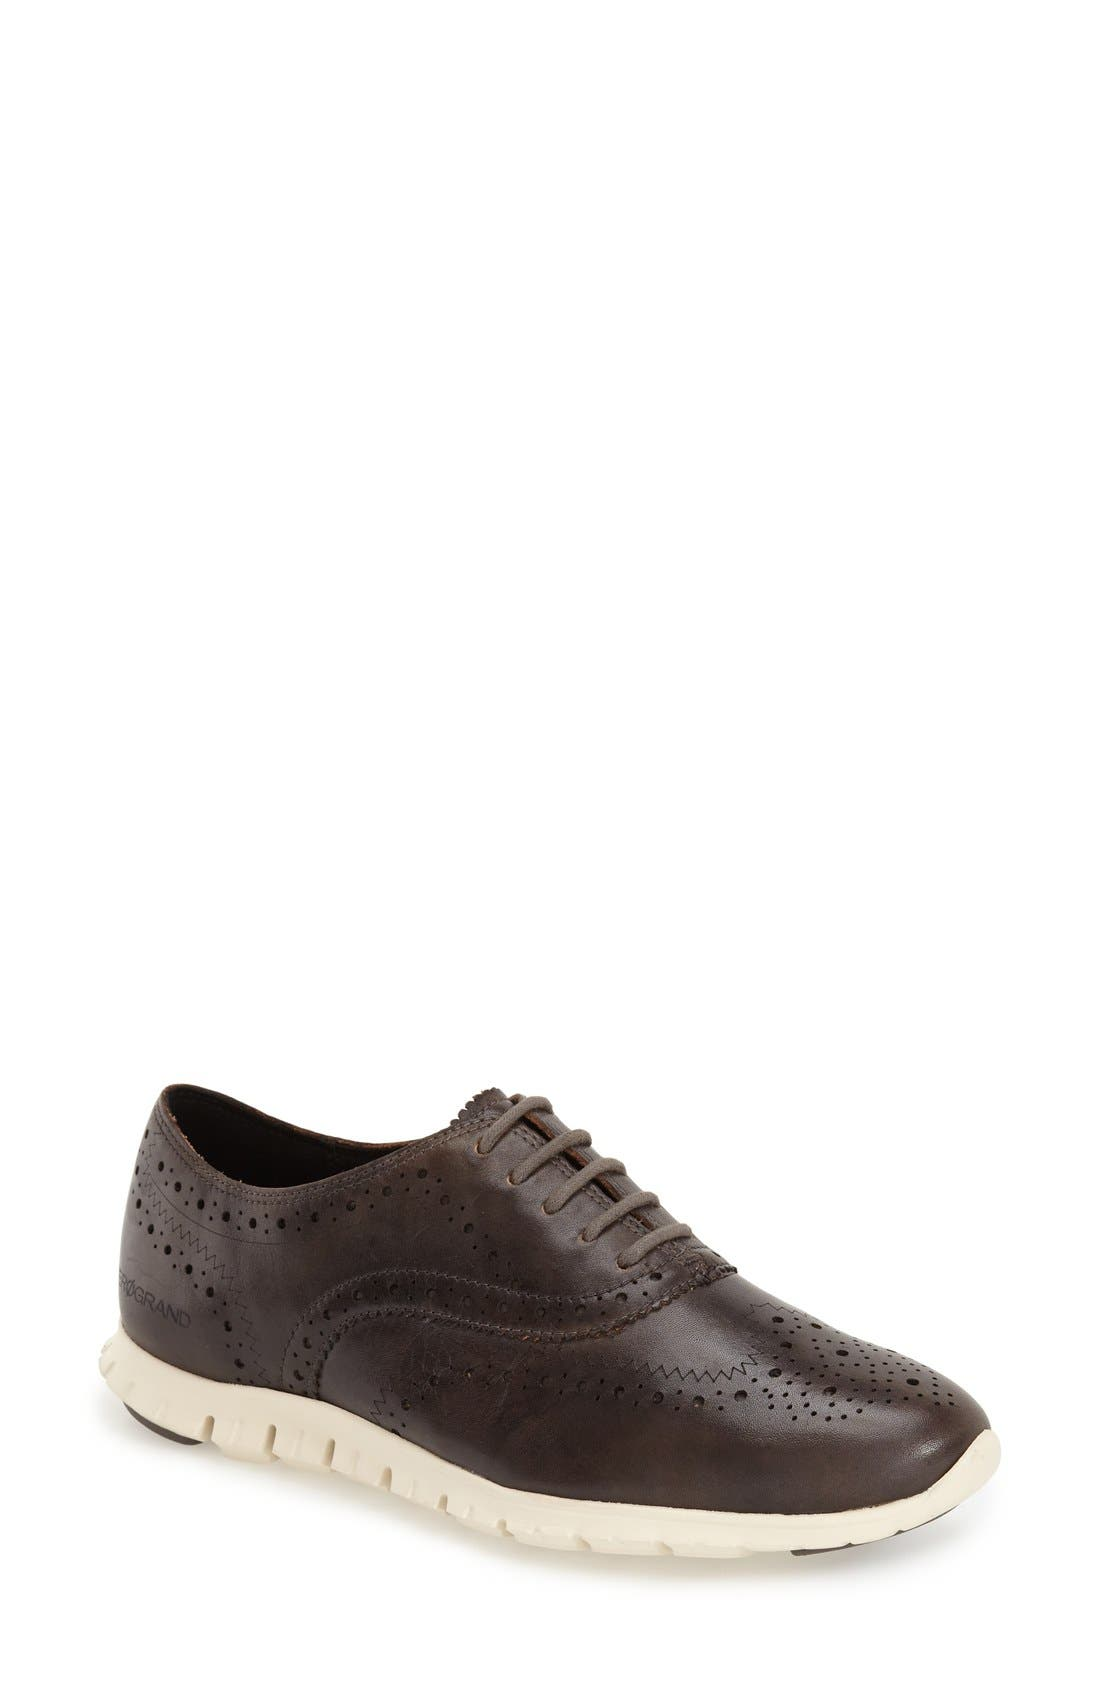 'ZeroGrand' Perforated Wingtip,                             Main thumbnail 11, color,